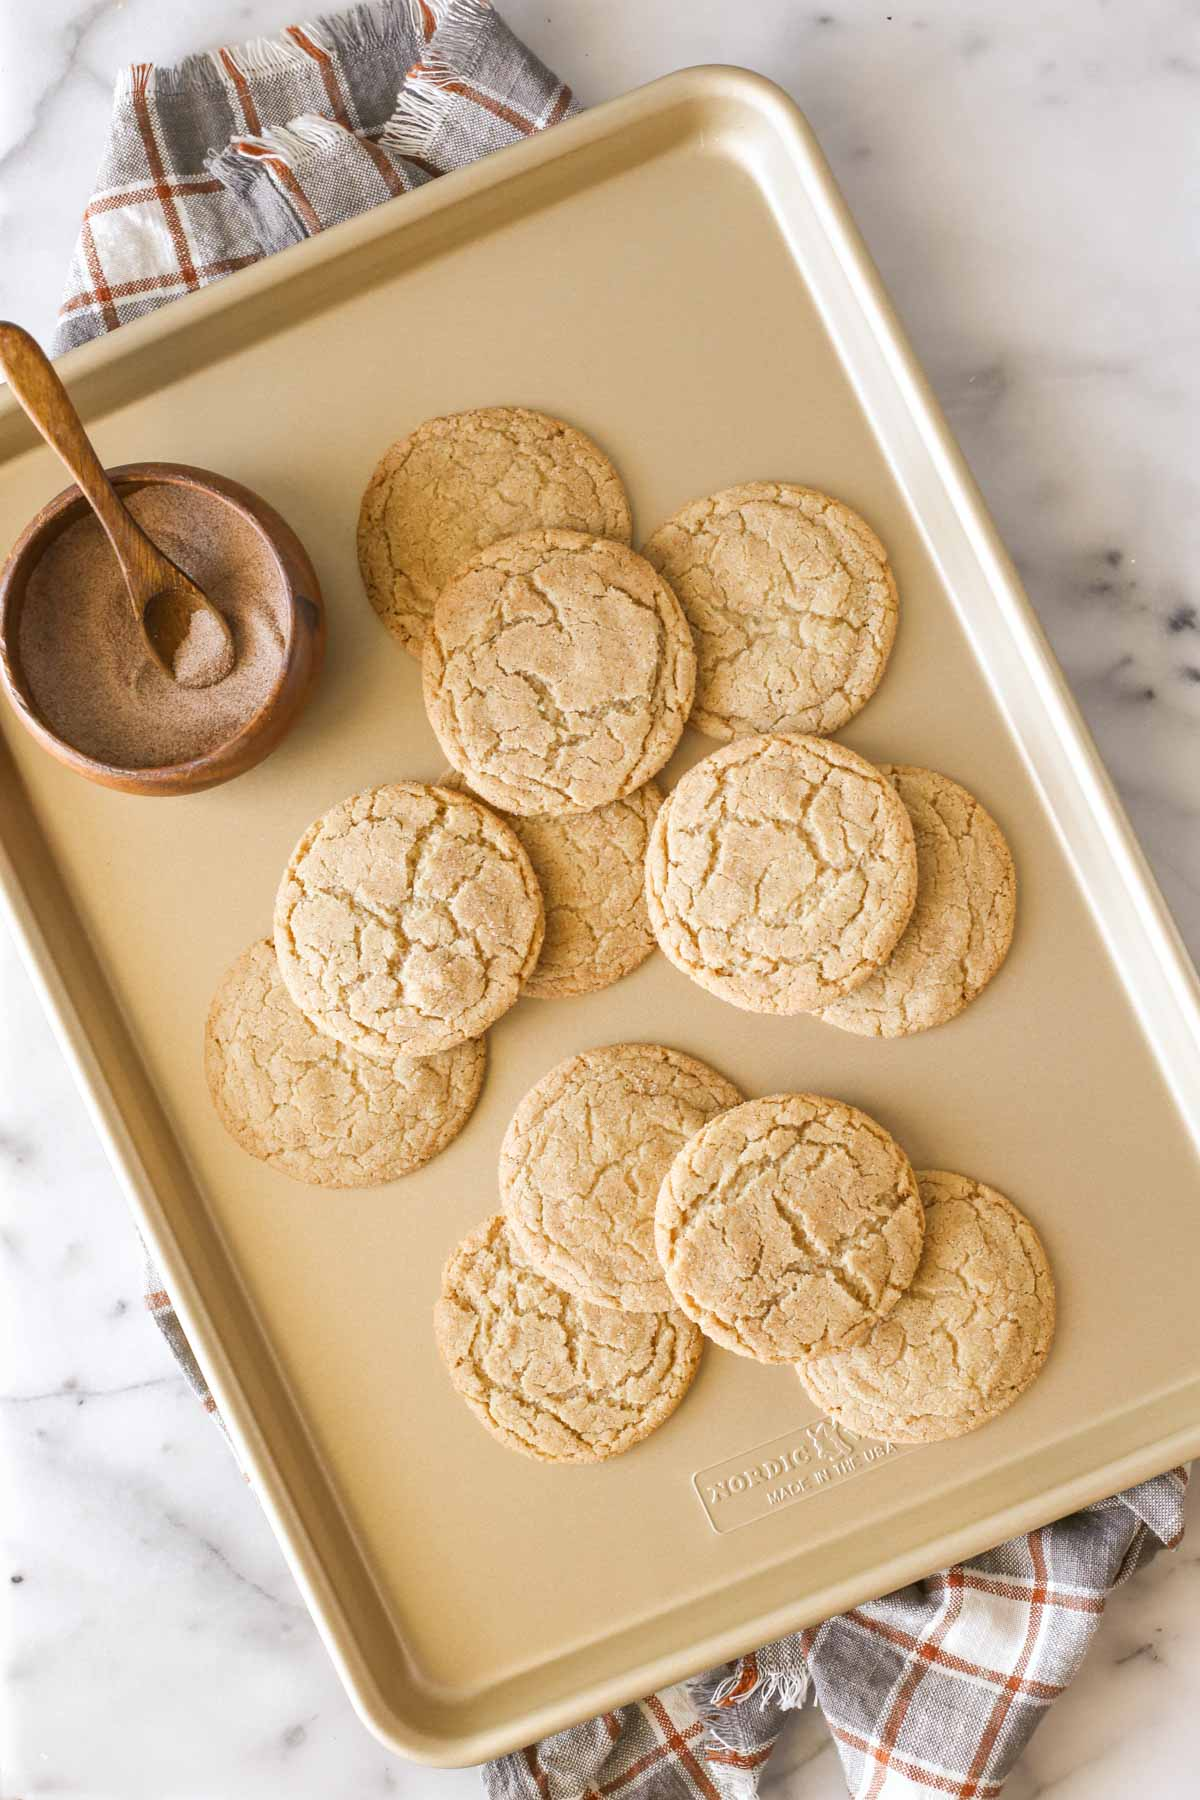 Overhead shot of Brown Butter Snickerdoodles on a baking sheet, along with a small wood bowl of cinnamon sugar with a small wooden spoon in it.